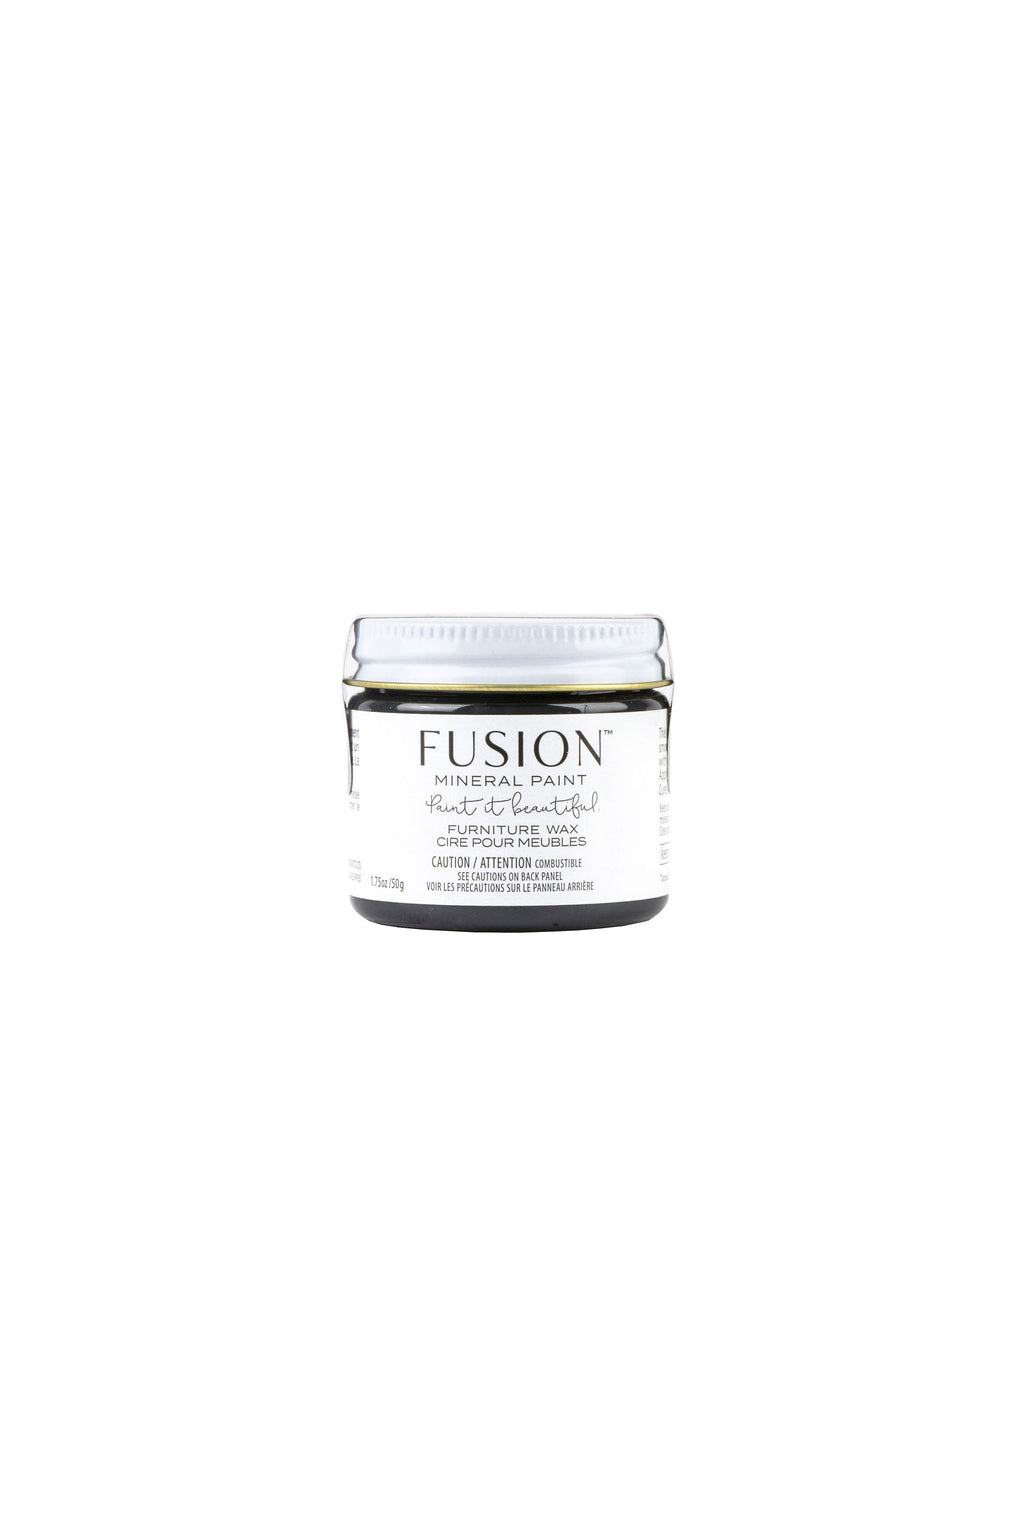 Fusion Mineral Paint Black Wax 50 g